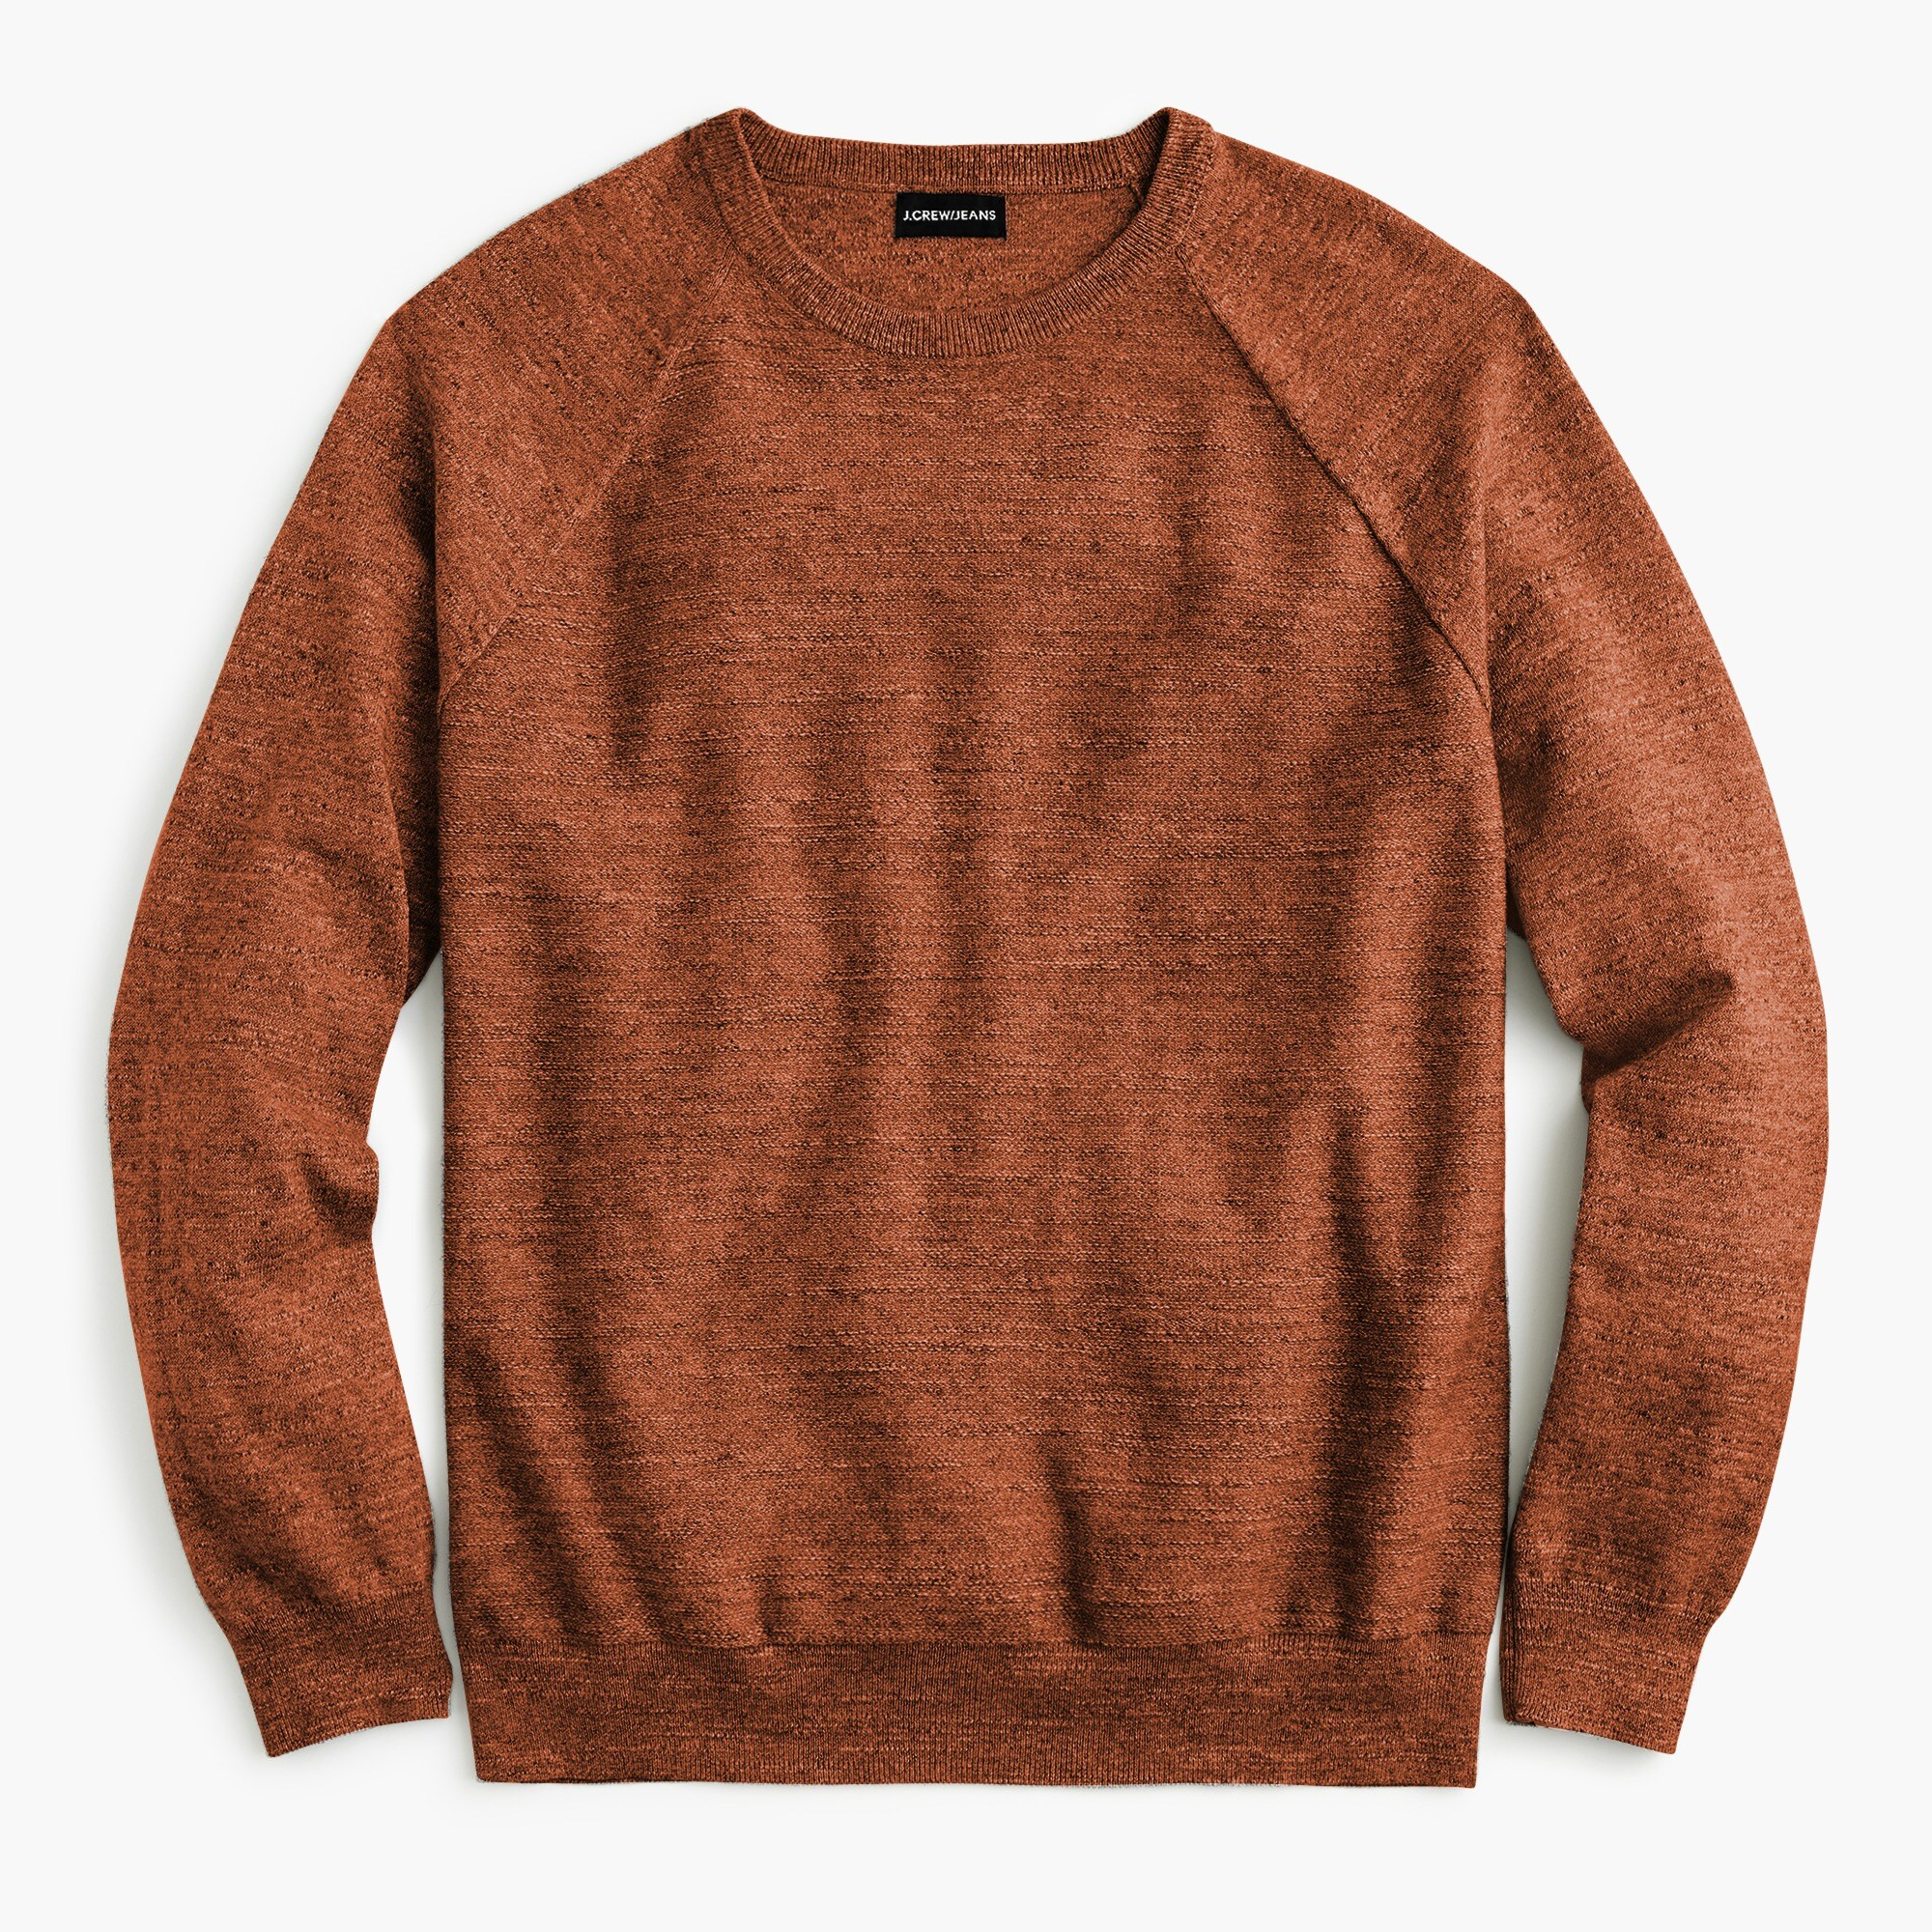 Image 5 for Rugged cotton sweater